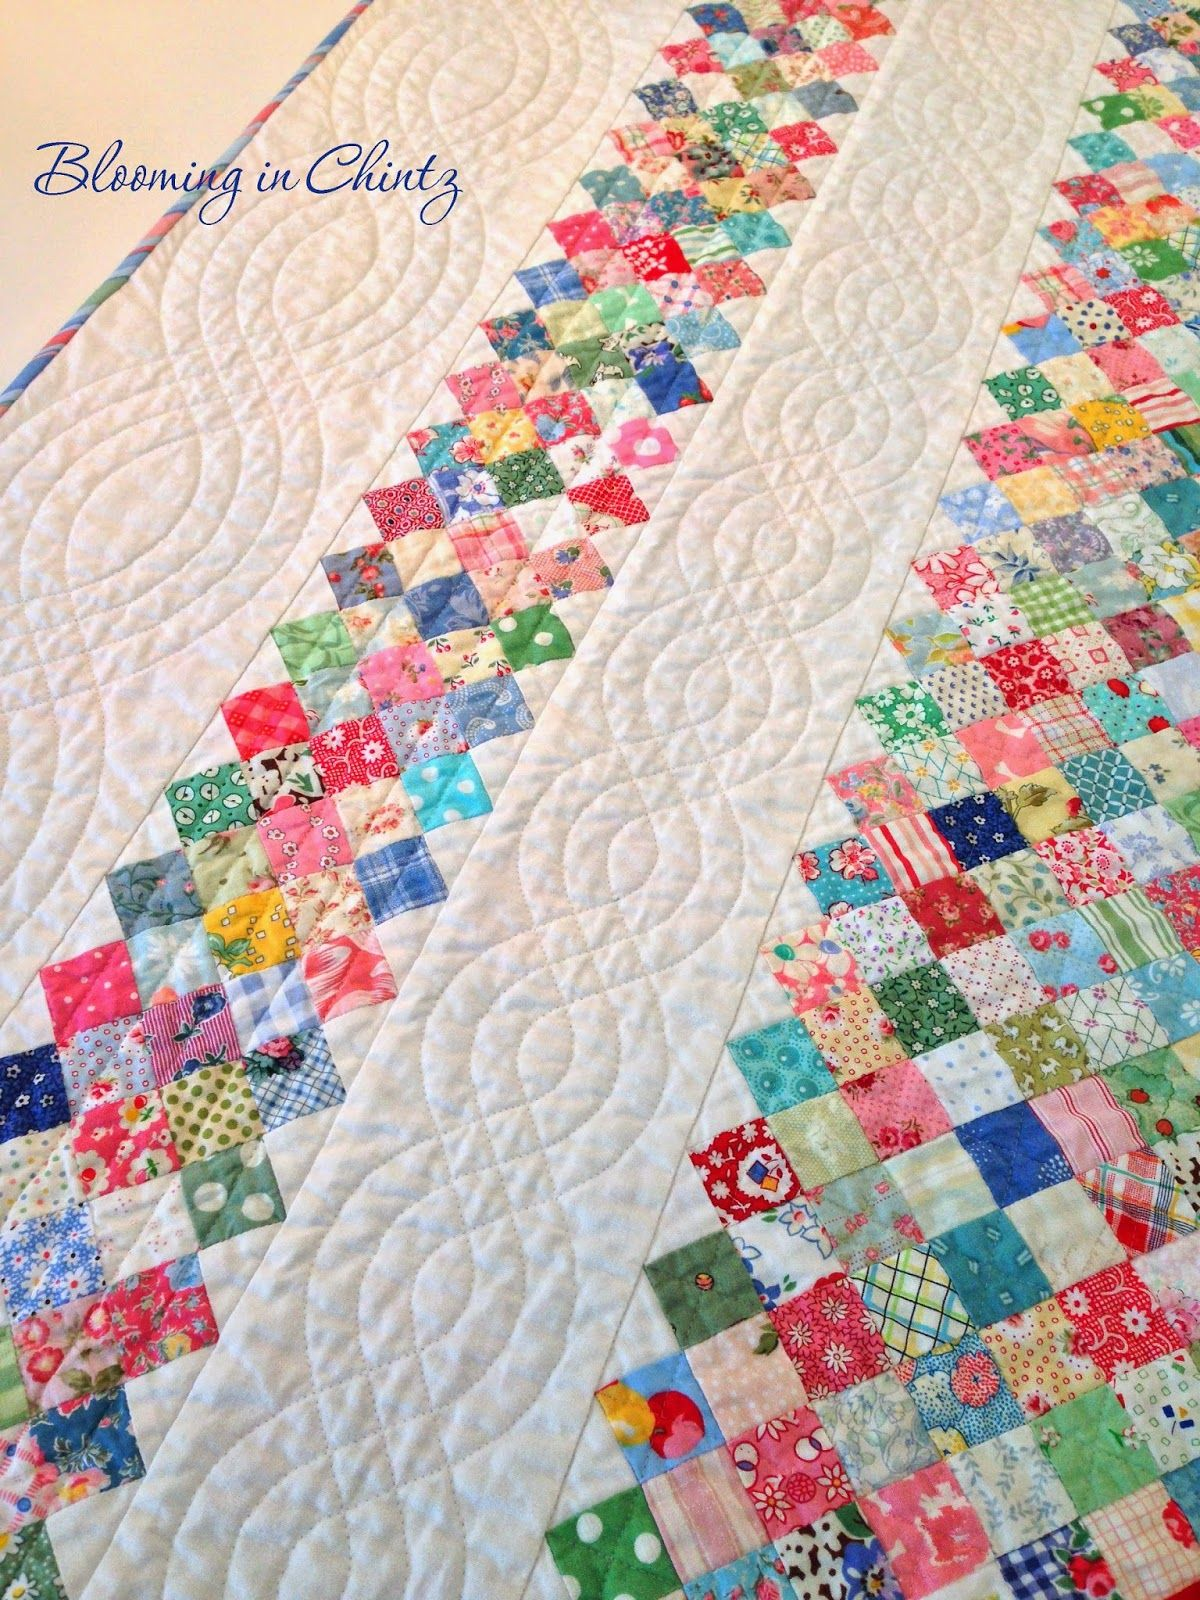 Quilting cables with a walking foot on bloominginchintz.blogspot ... : quilting with a walking foot - Adamdwight.com